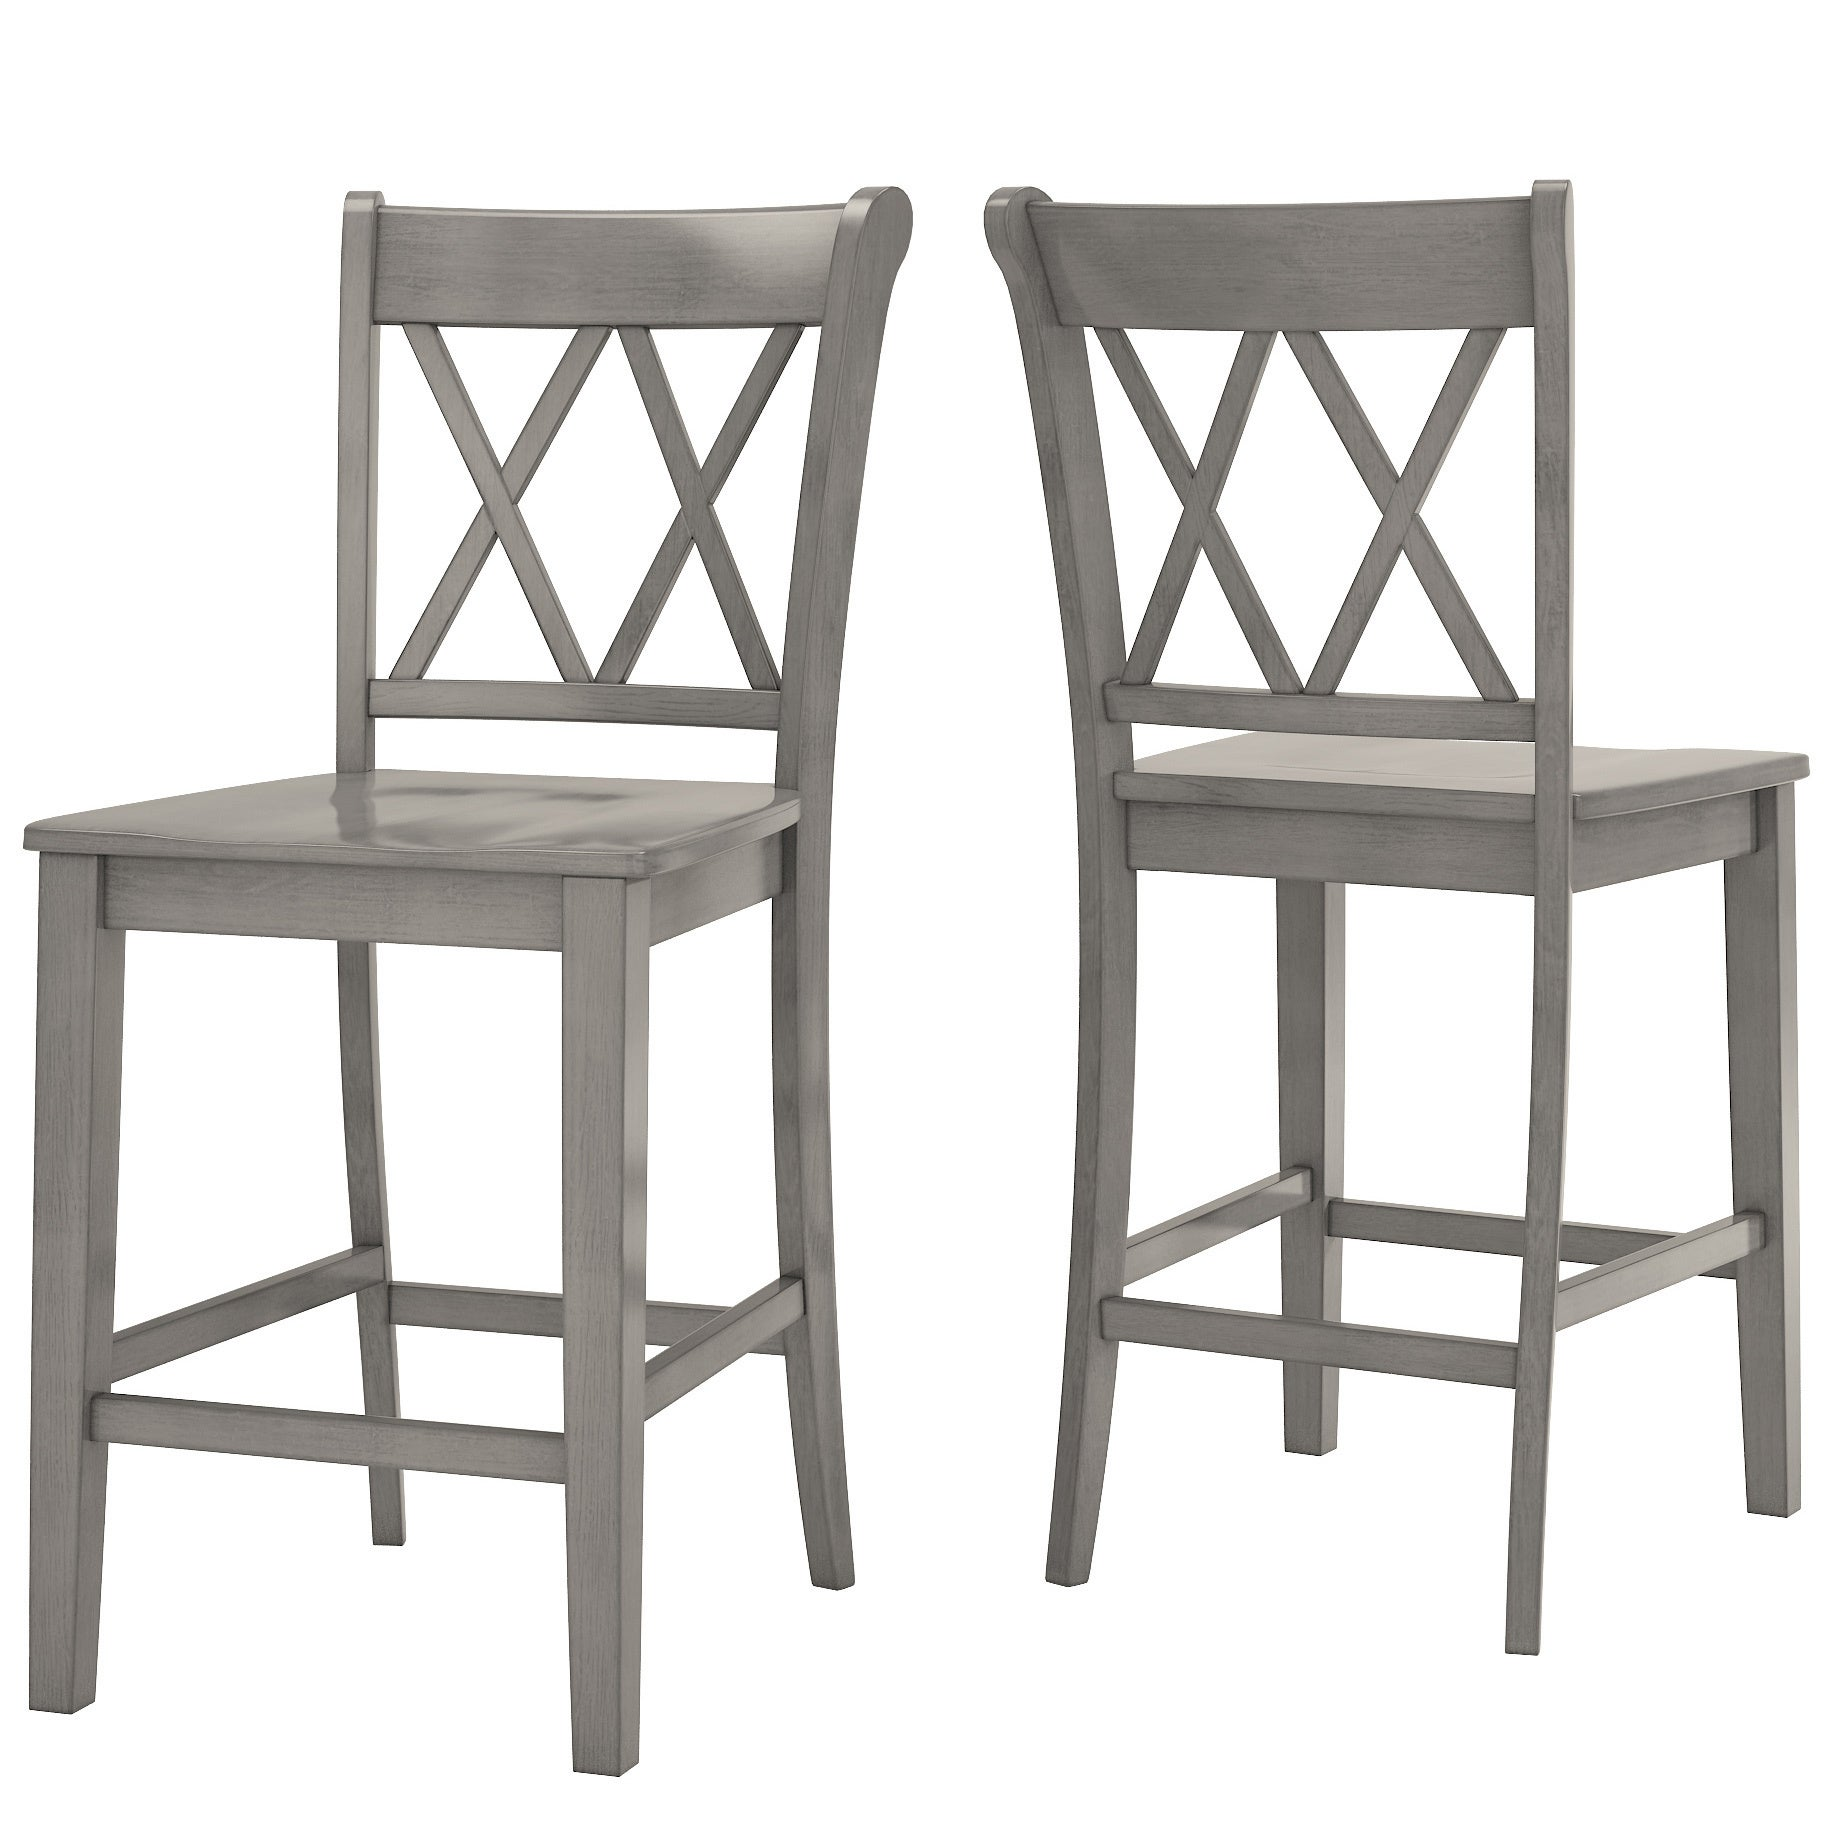 Shop Eleanor Double X Back Wood 24 Inch Counter Chair Set Of 2 By